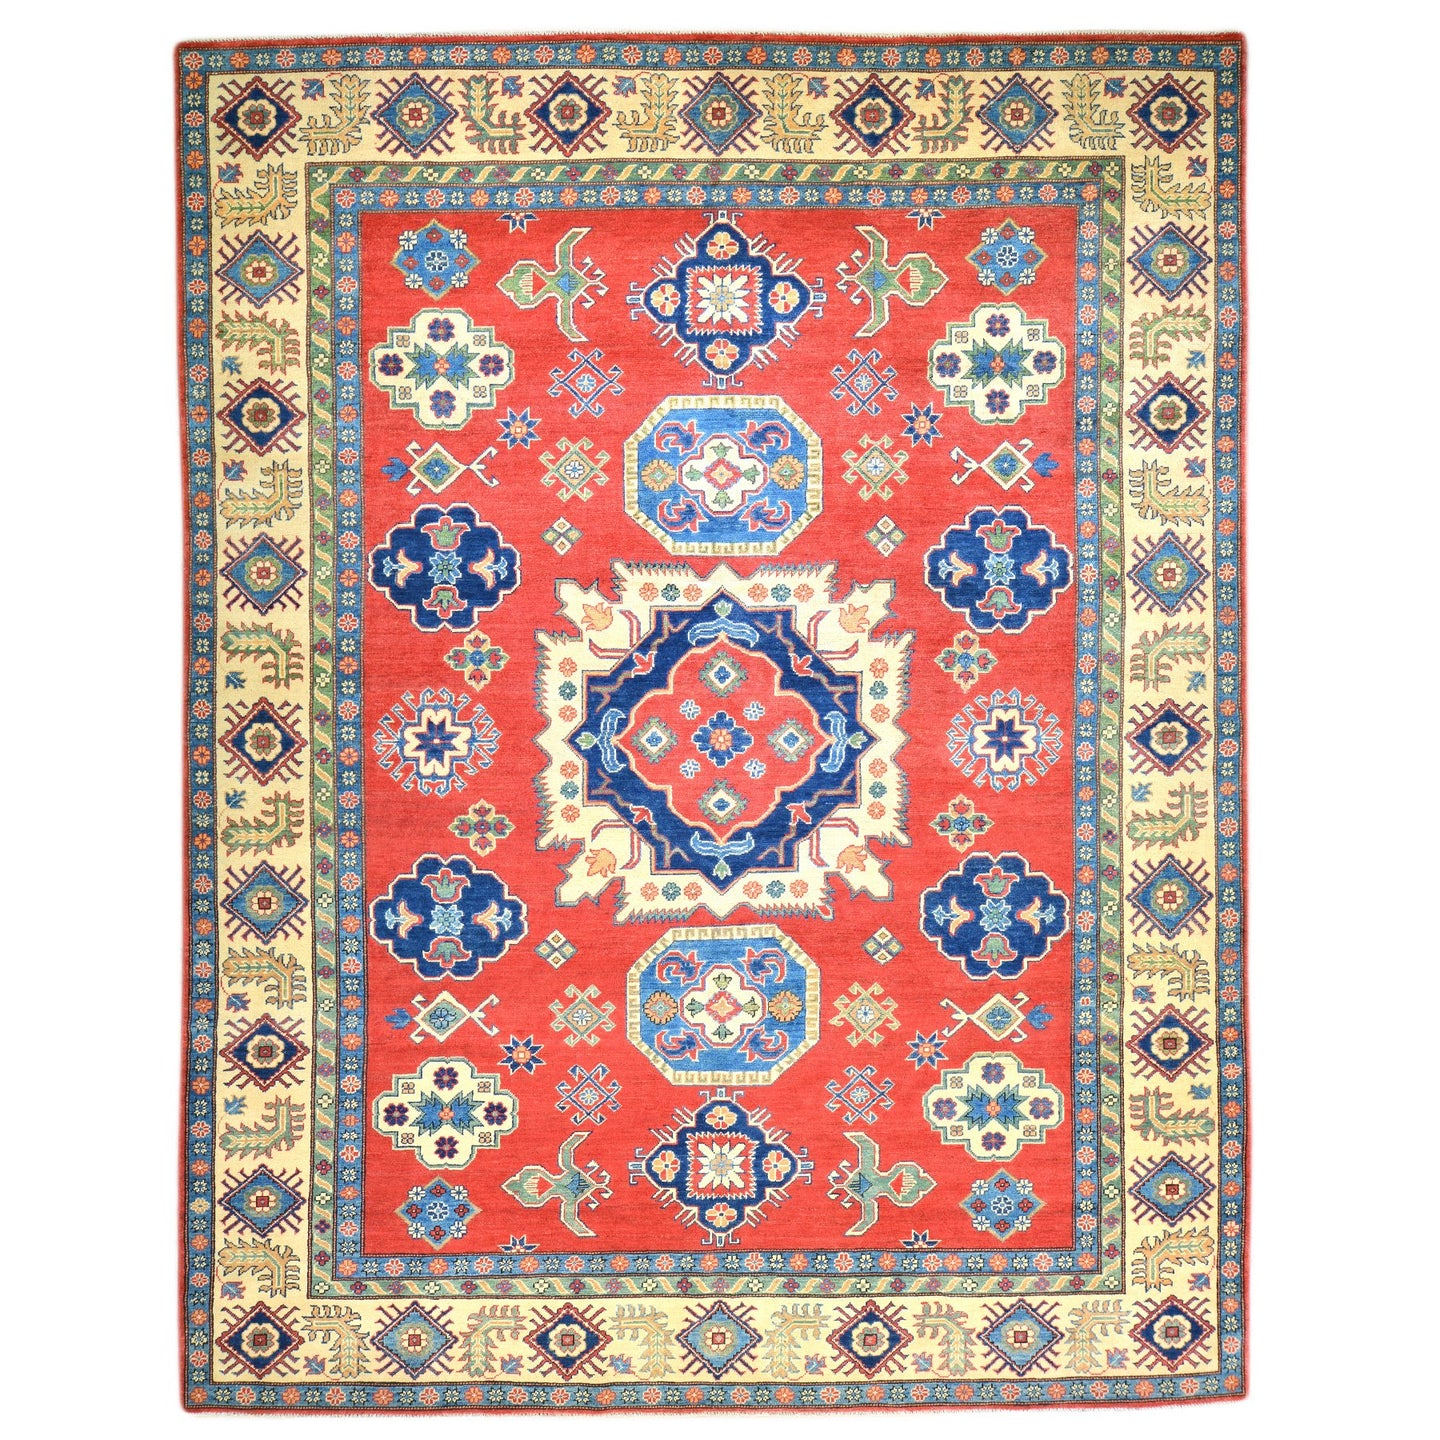 Oriental rugs, hand-knotted carpets, sustainable rugs, classic world oriental rugs, handmade, United States, interior design,  Brrsf-1179